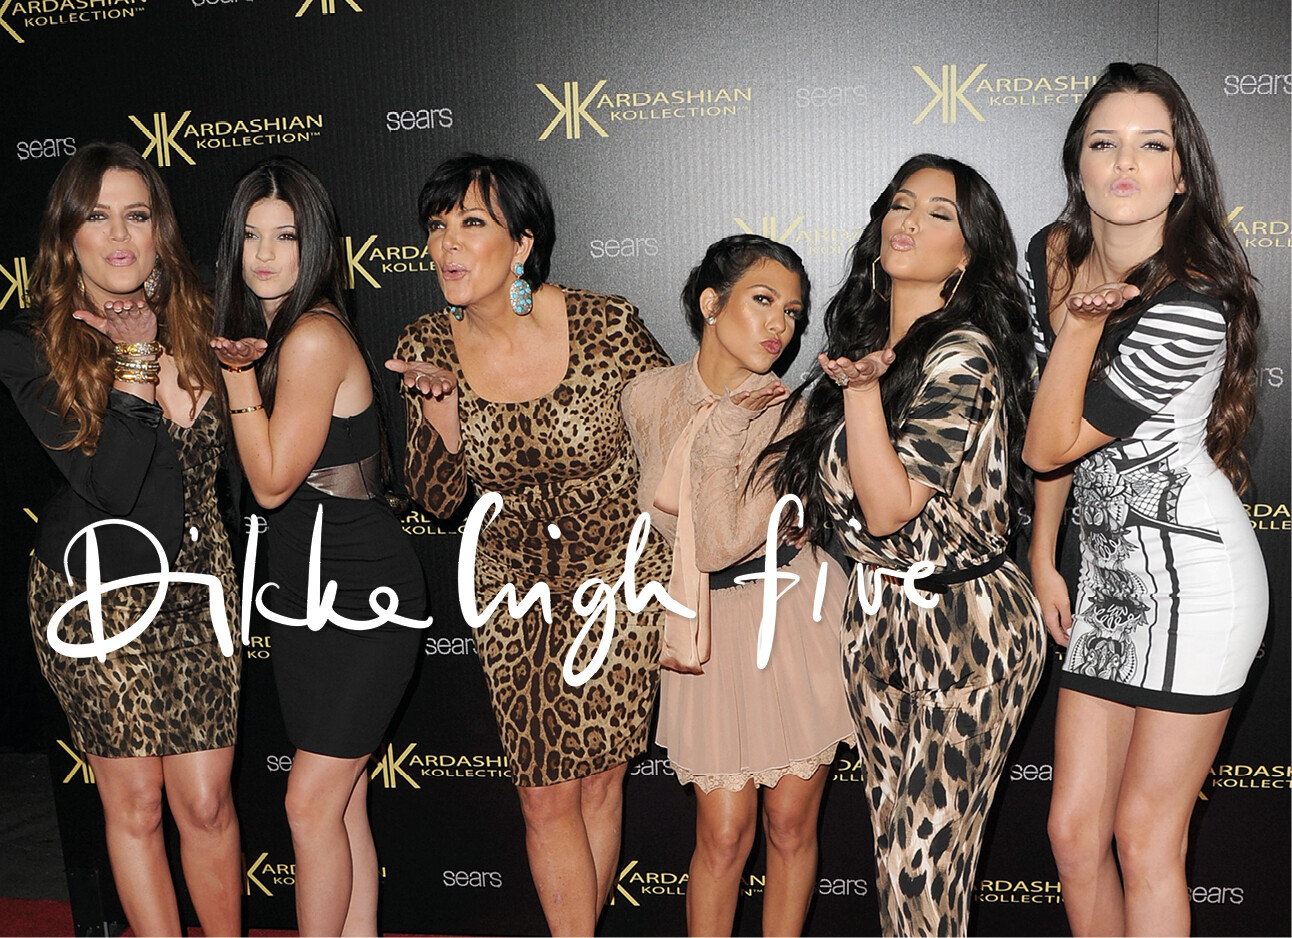 End of an era: Keeping Up With the Kardashians kapt ermee